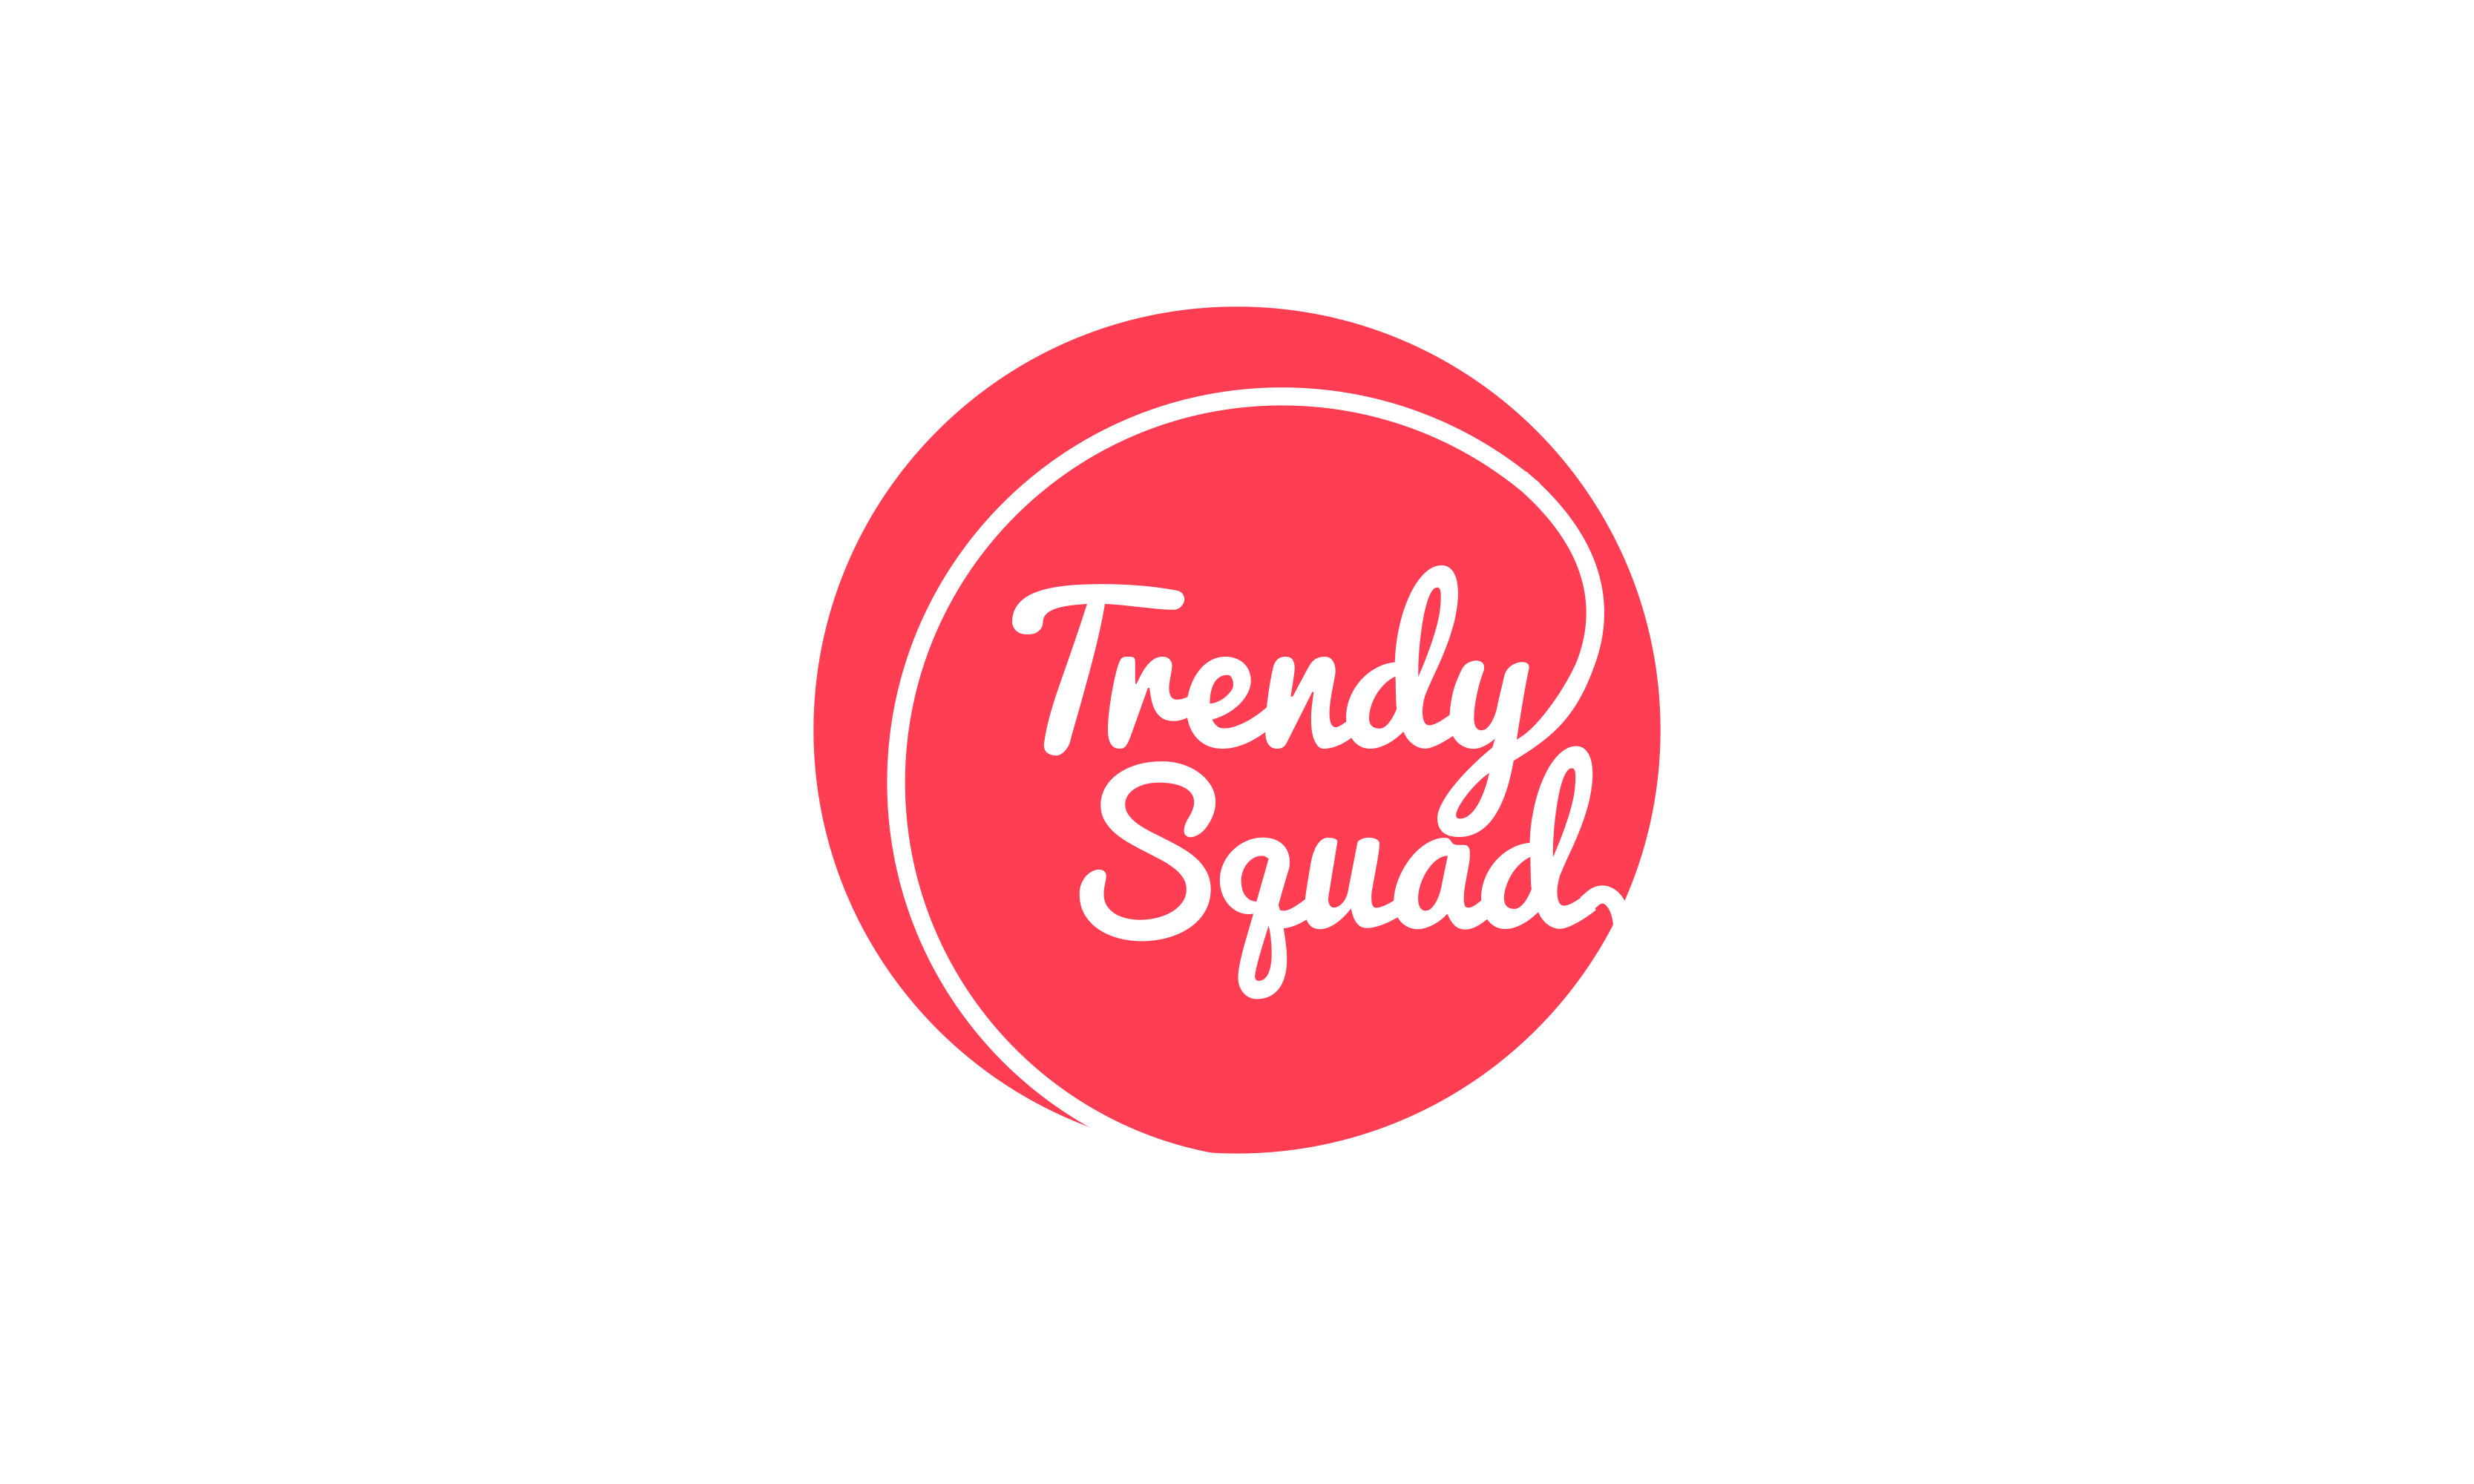 Trendysquad - Potential product name for sale